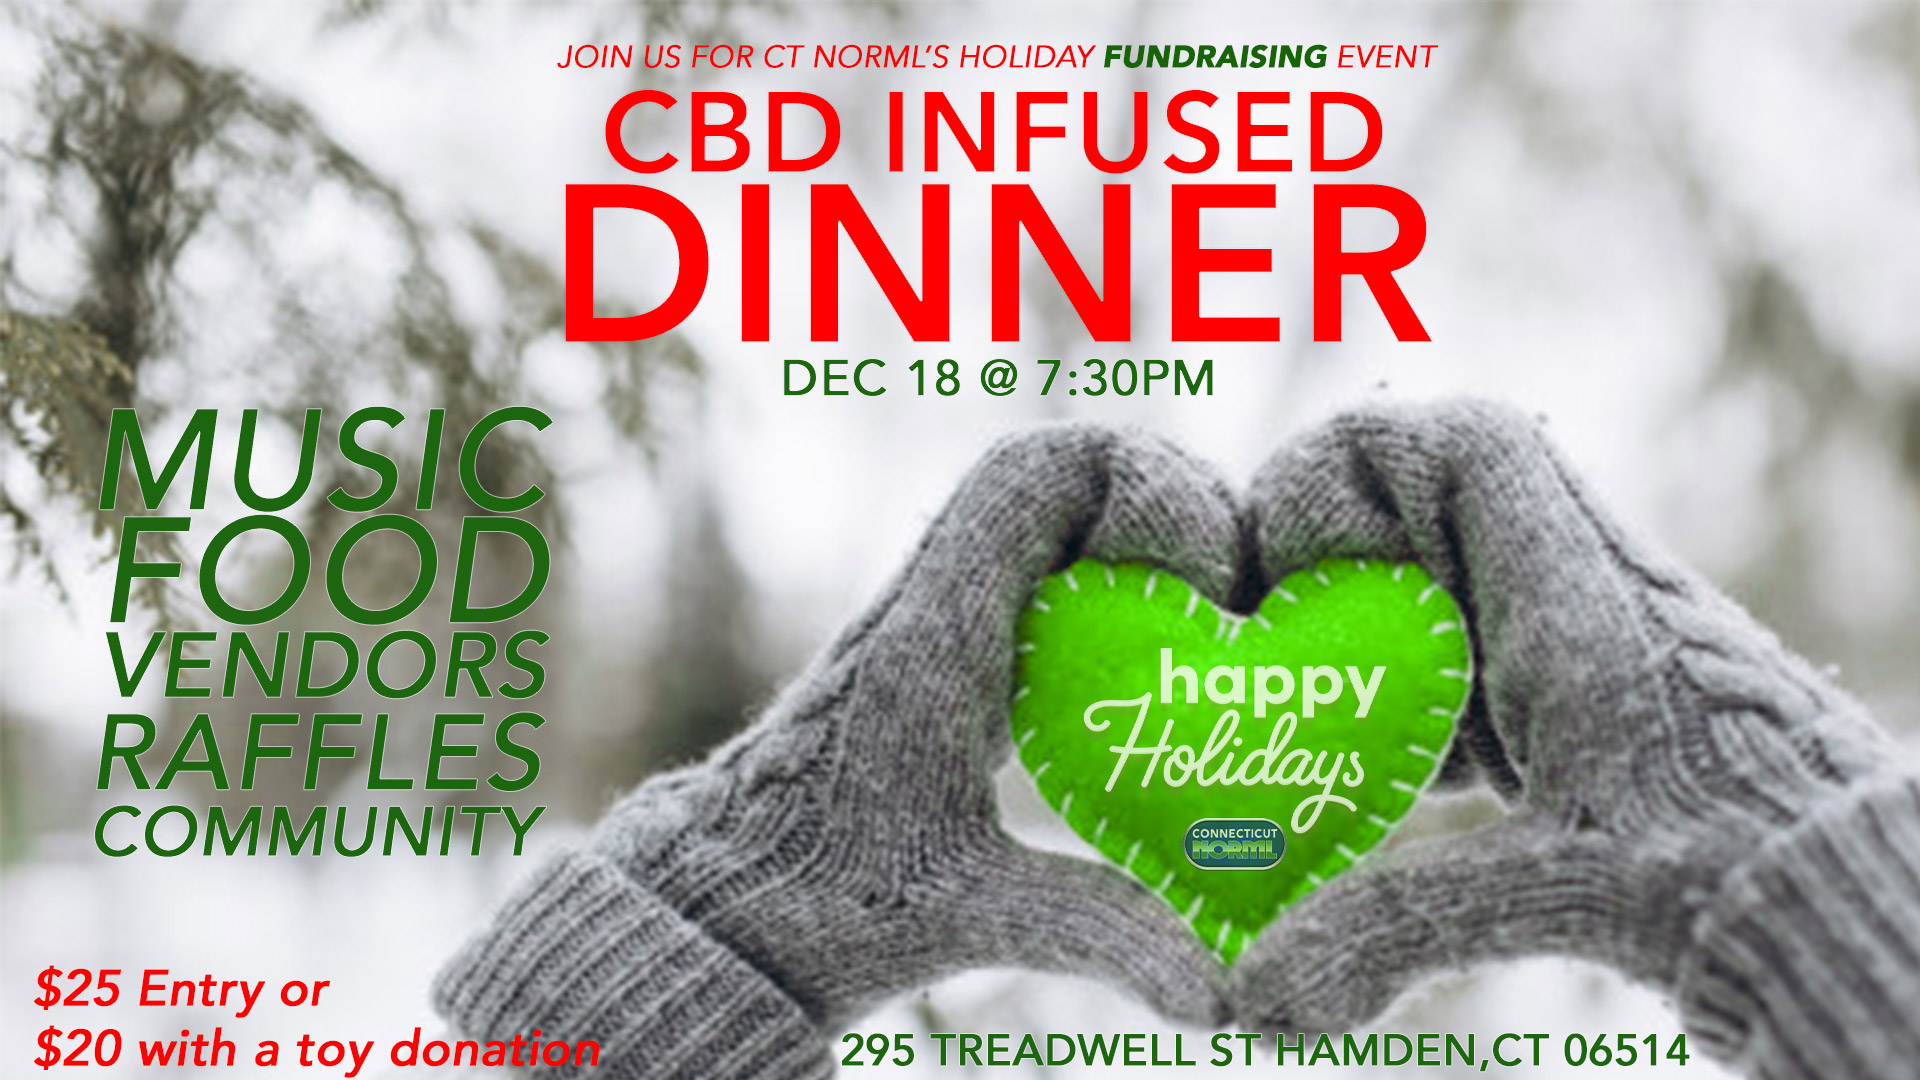 4th Annual CT NORML Holiday Party